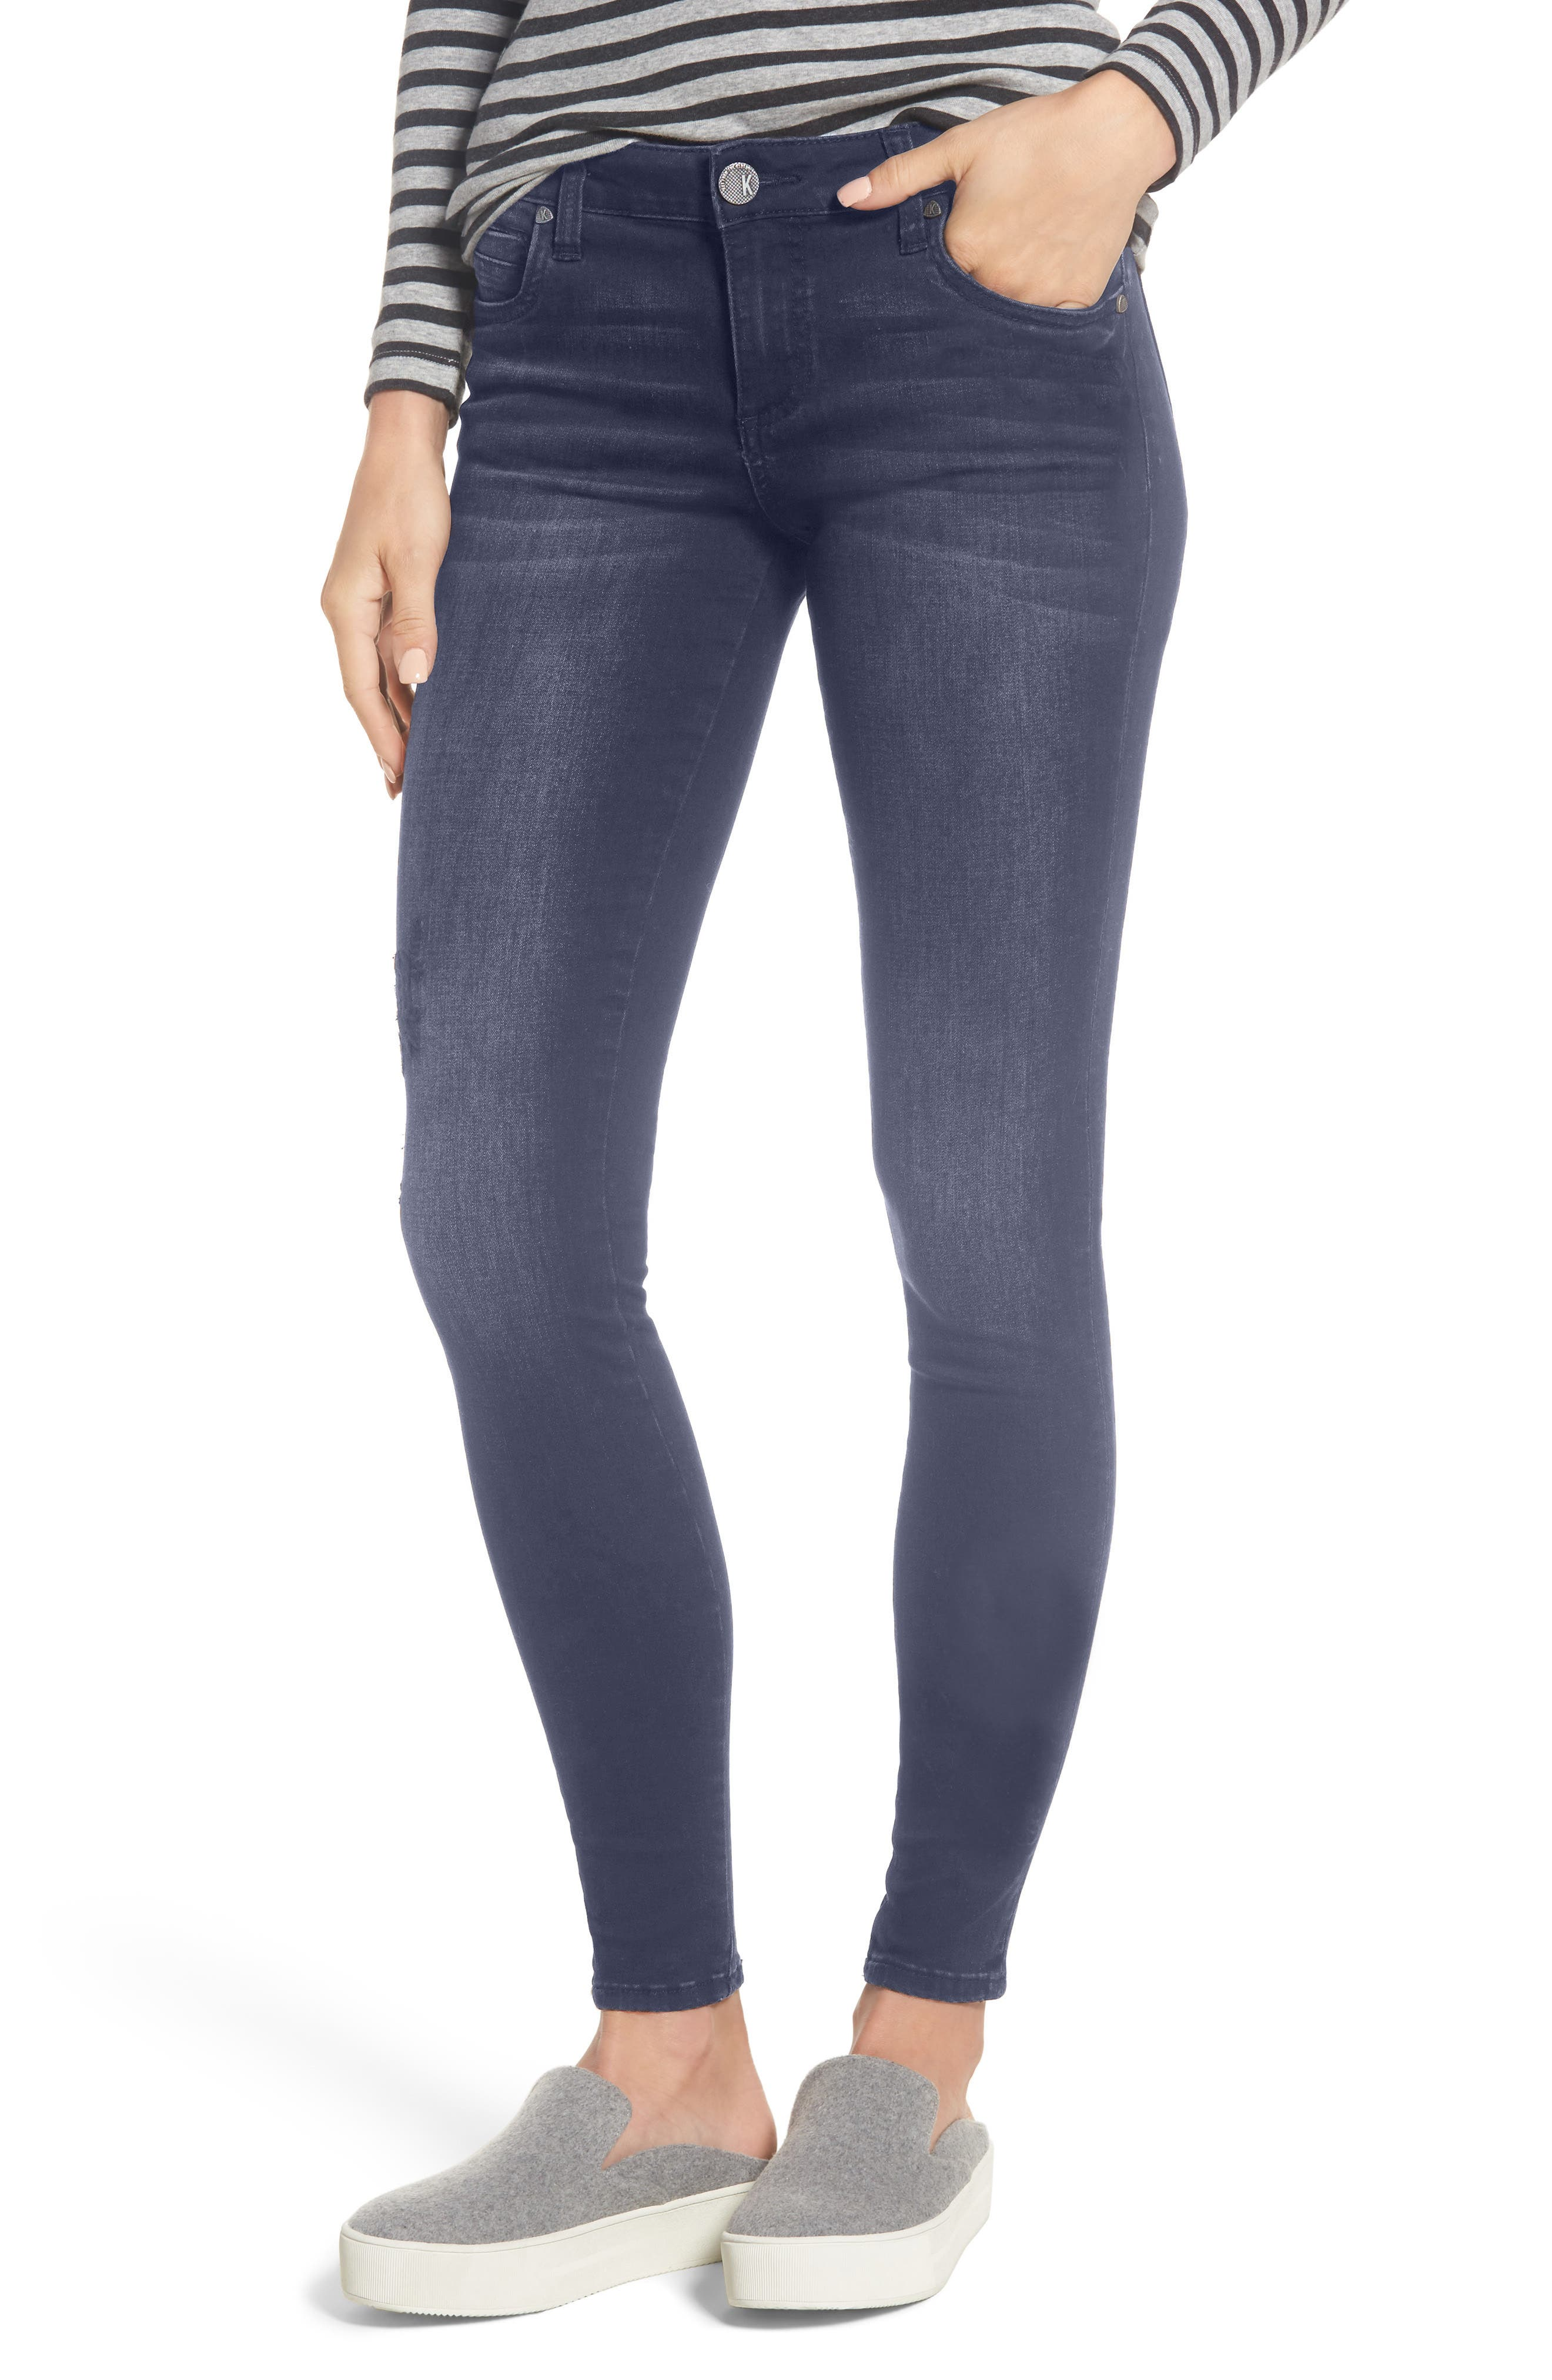 Main Image - KUT from the Kloth Mia Embroidered Skinny Jeans (Quintessential) (Regular & Petite)